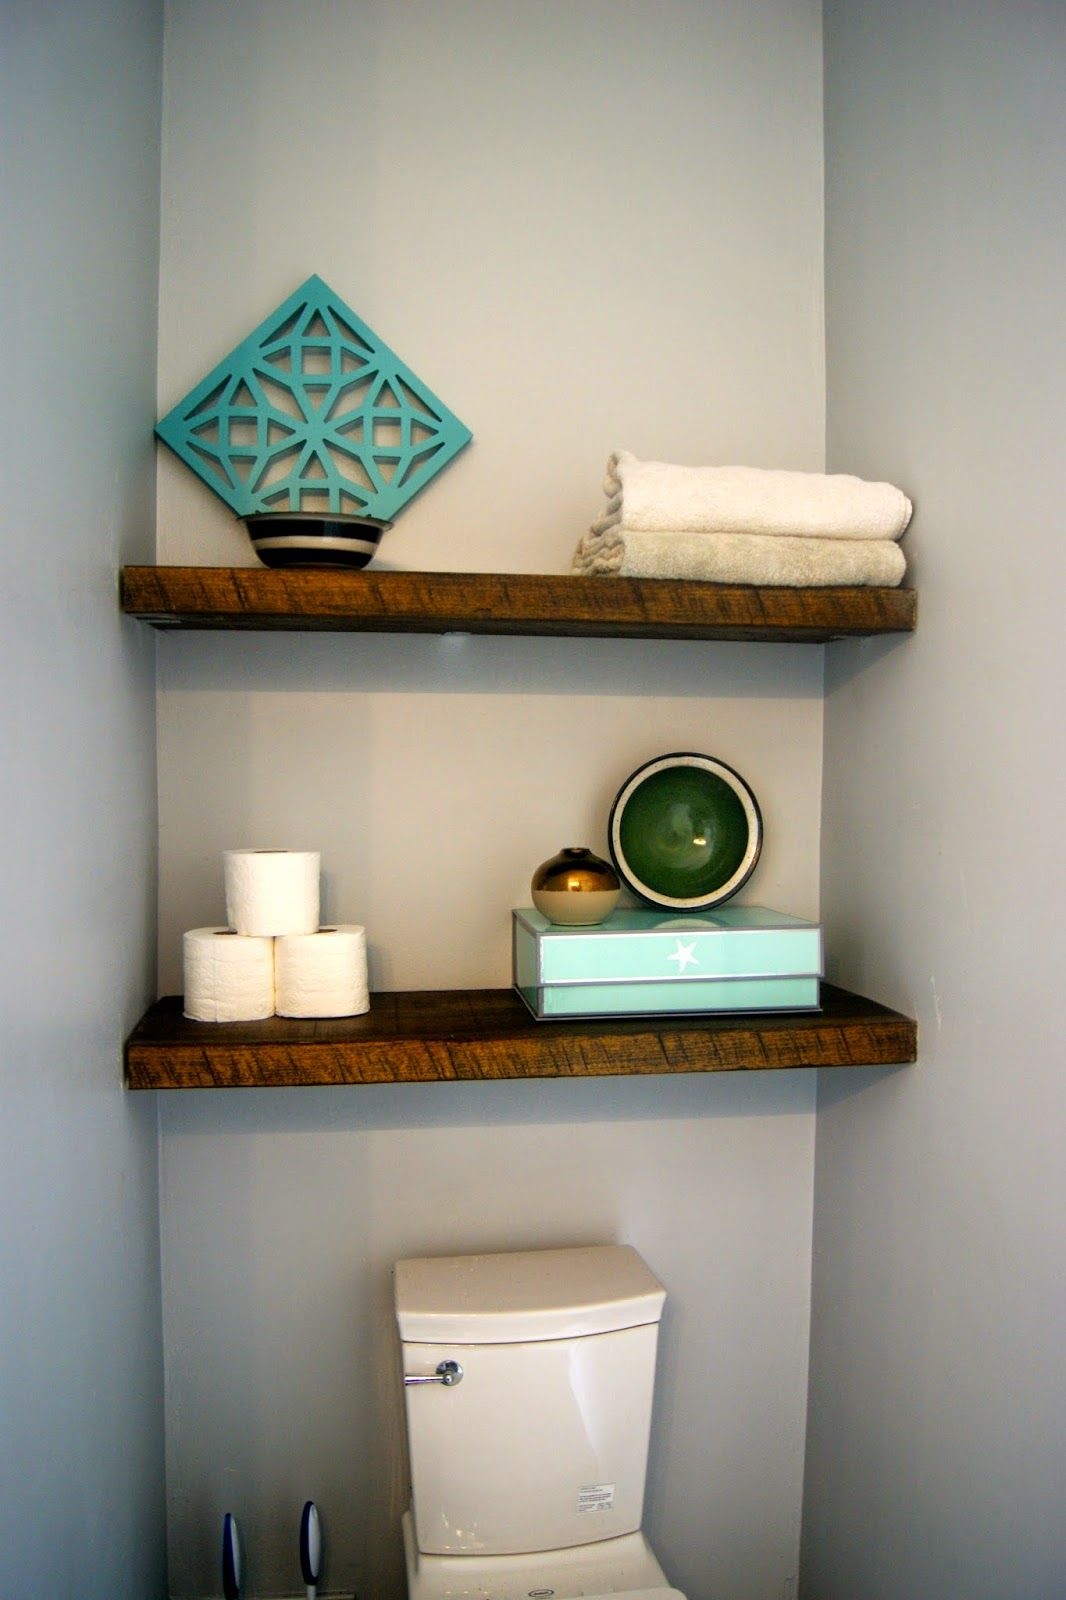 Floating Shelves Above The Toilet Use Small L Brackets